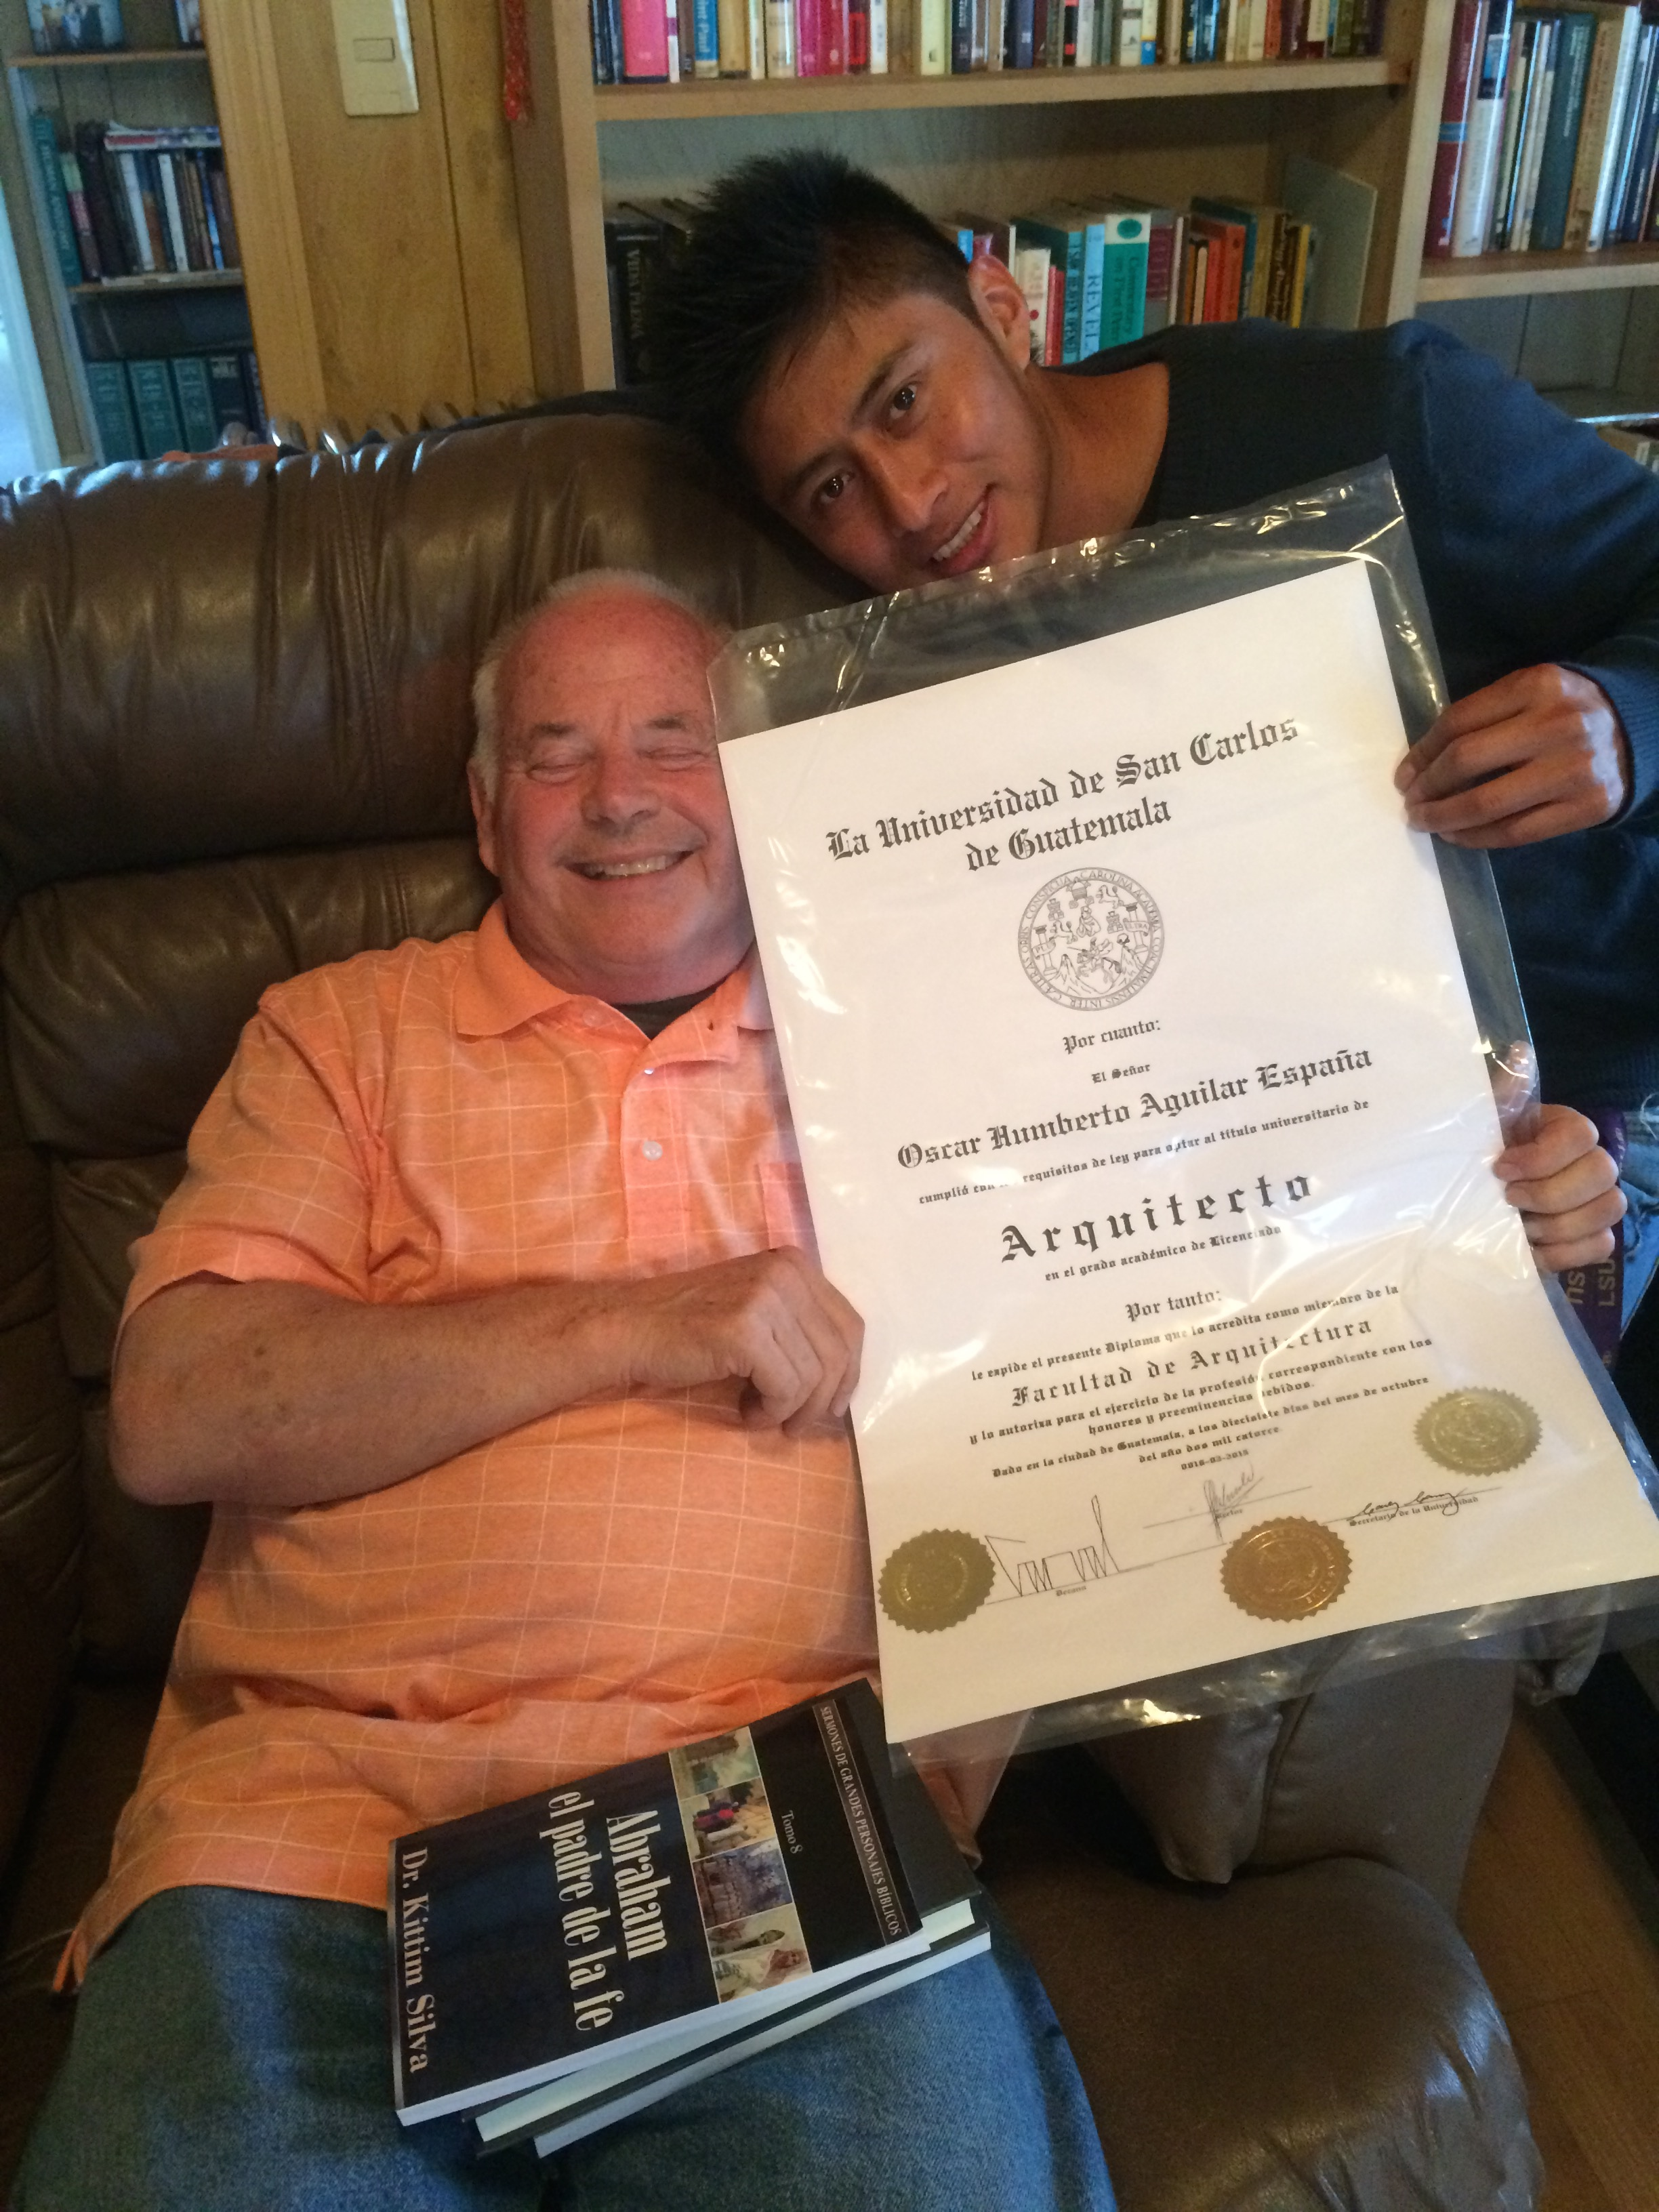 Oscar received his Architect Diploma--little thing huh?